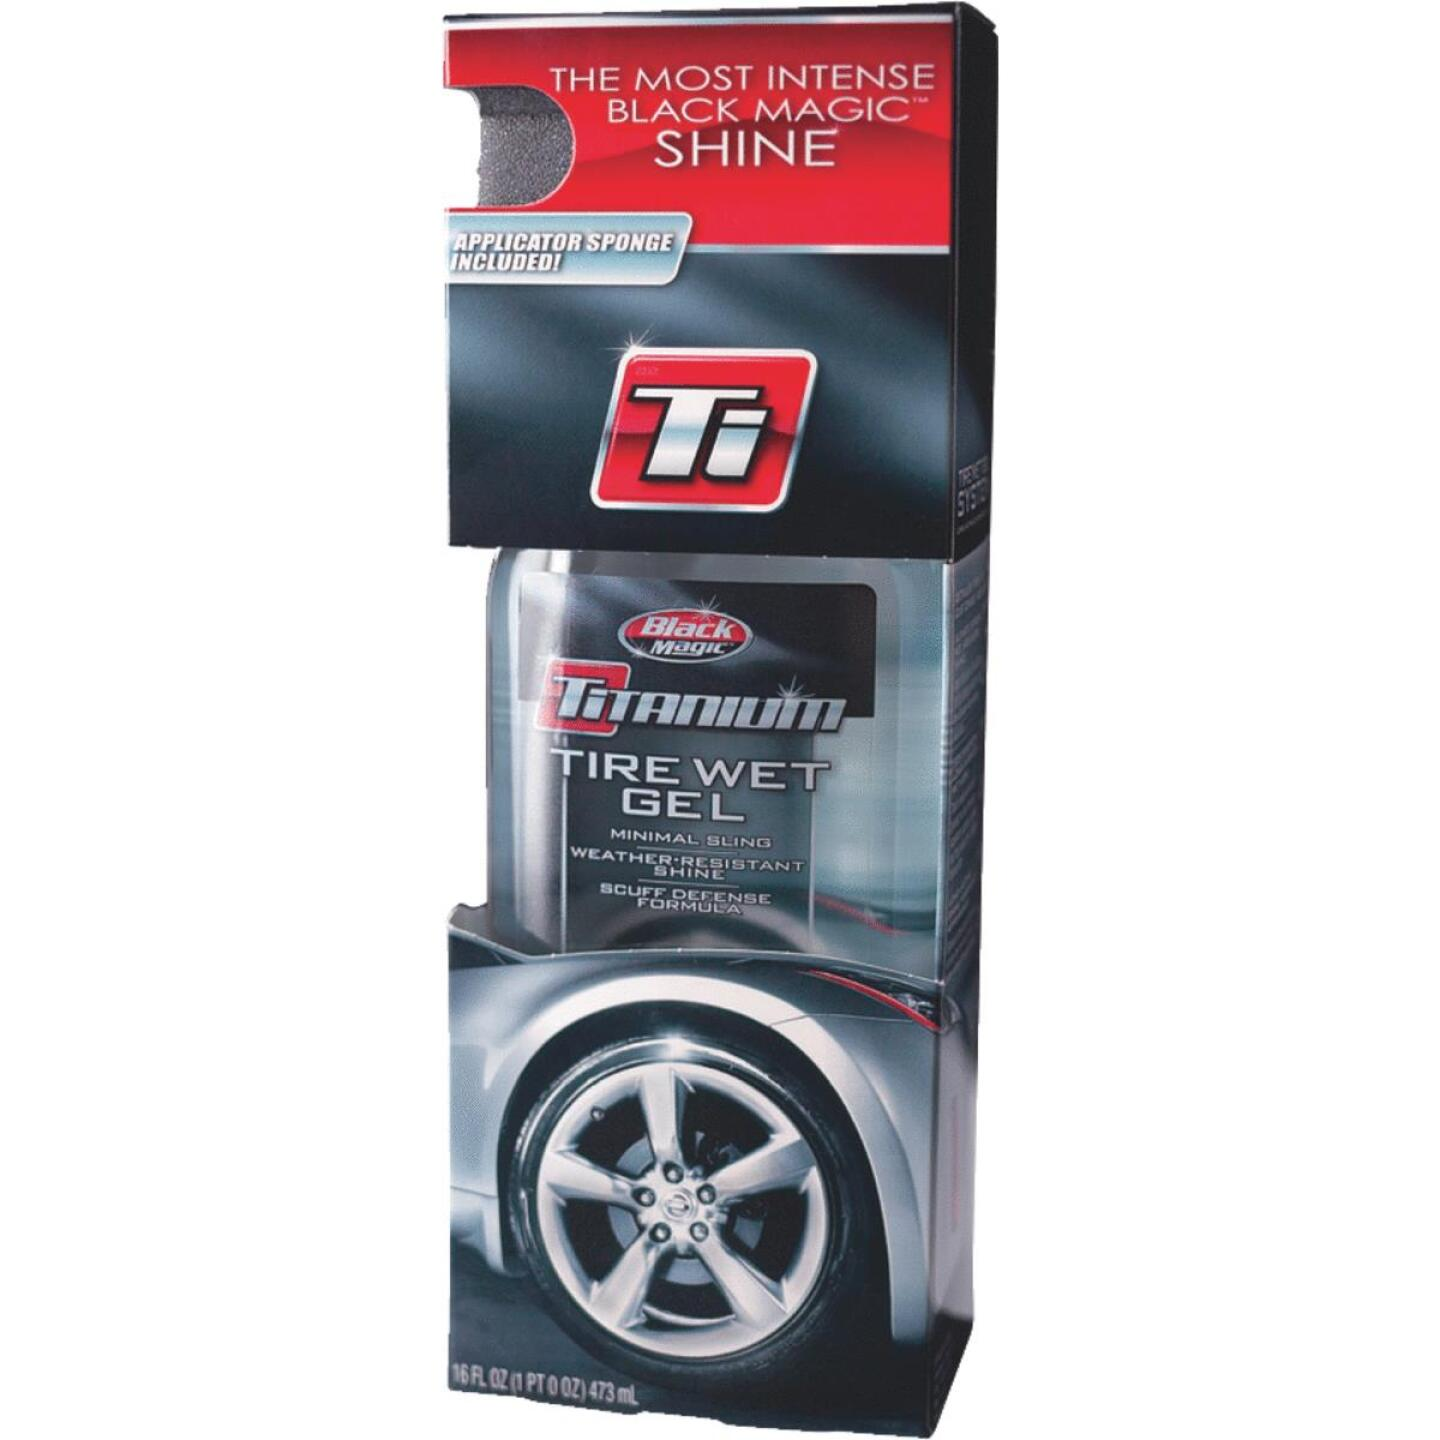 BLACK MAGIC Titanium 16 Oz. Pourable Tire Wet Gel Tire Shine Image 1